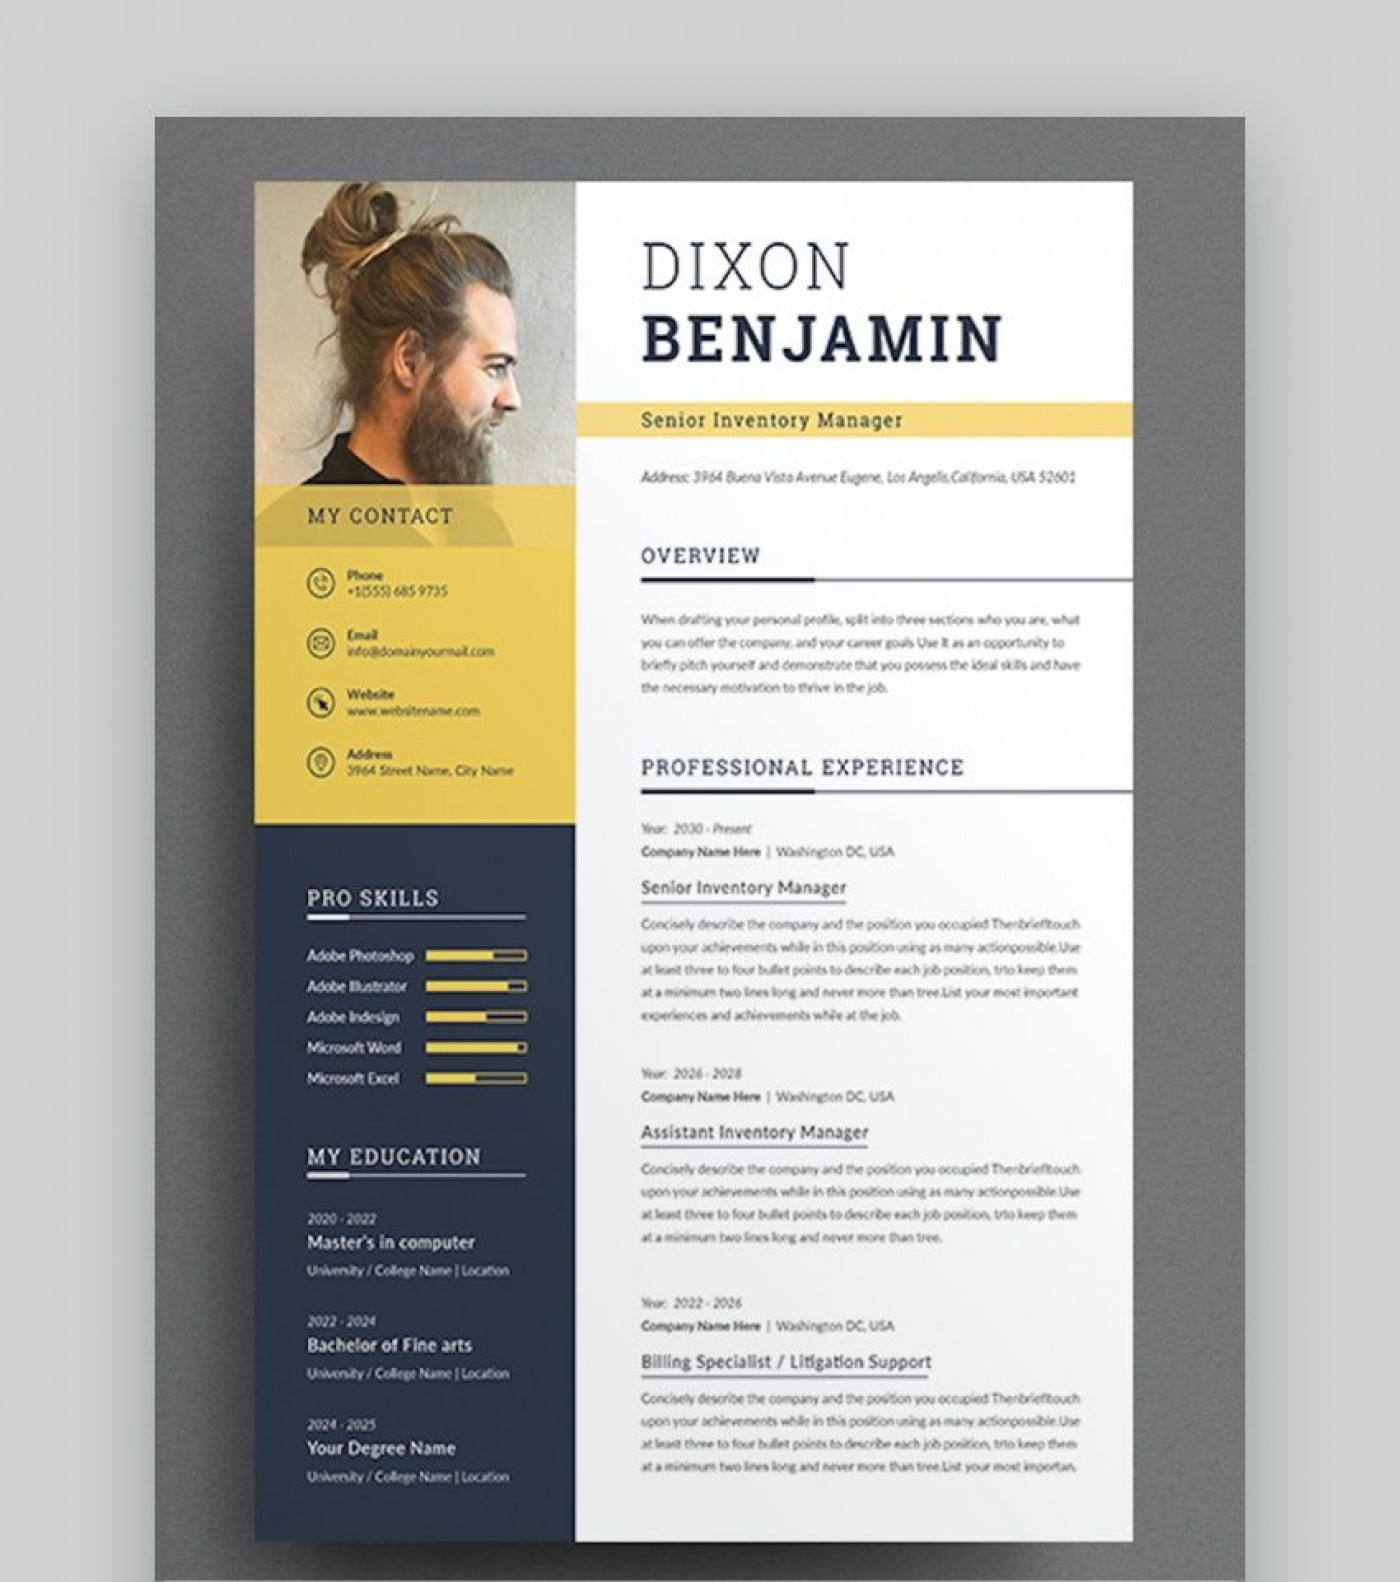 007 Formidable Example Cv Template Word Highest Quality  Resume Microsoft1400